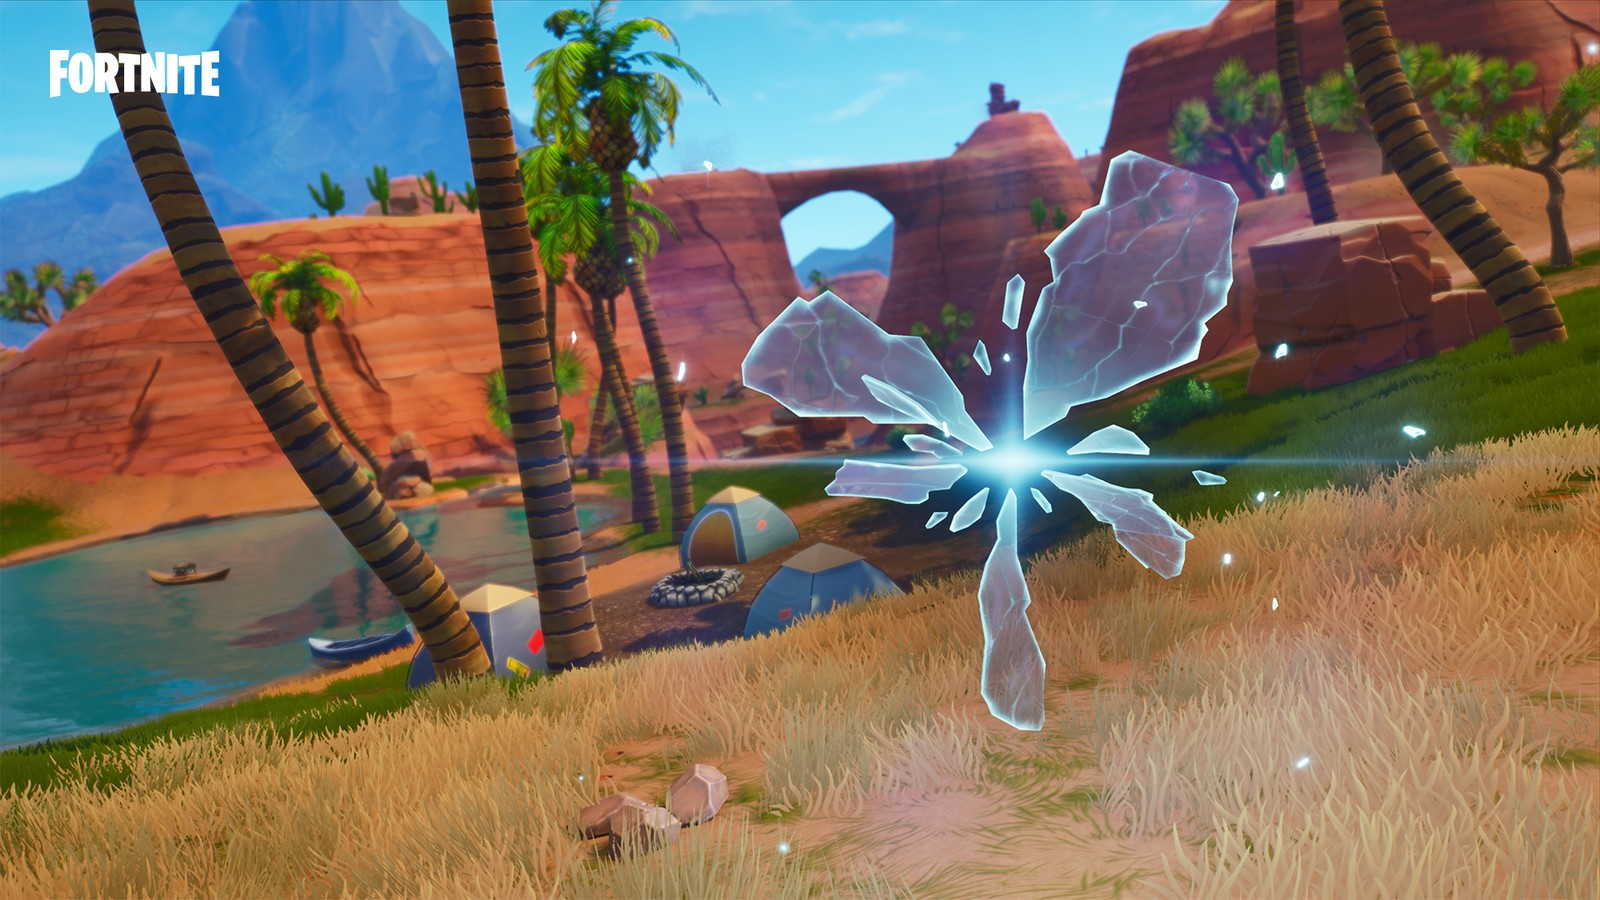 Fortnite  Season 5 Map  Guide to the New Locations and Changes   Inverse  Fortnite  Season 5 Map  Guide to the New Locations and Changes   Inverse